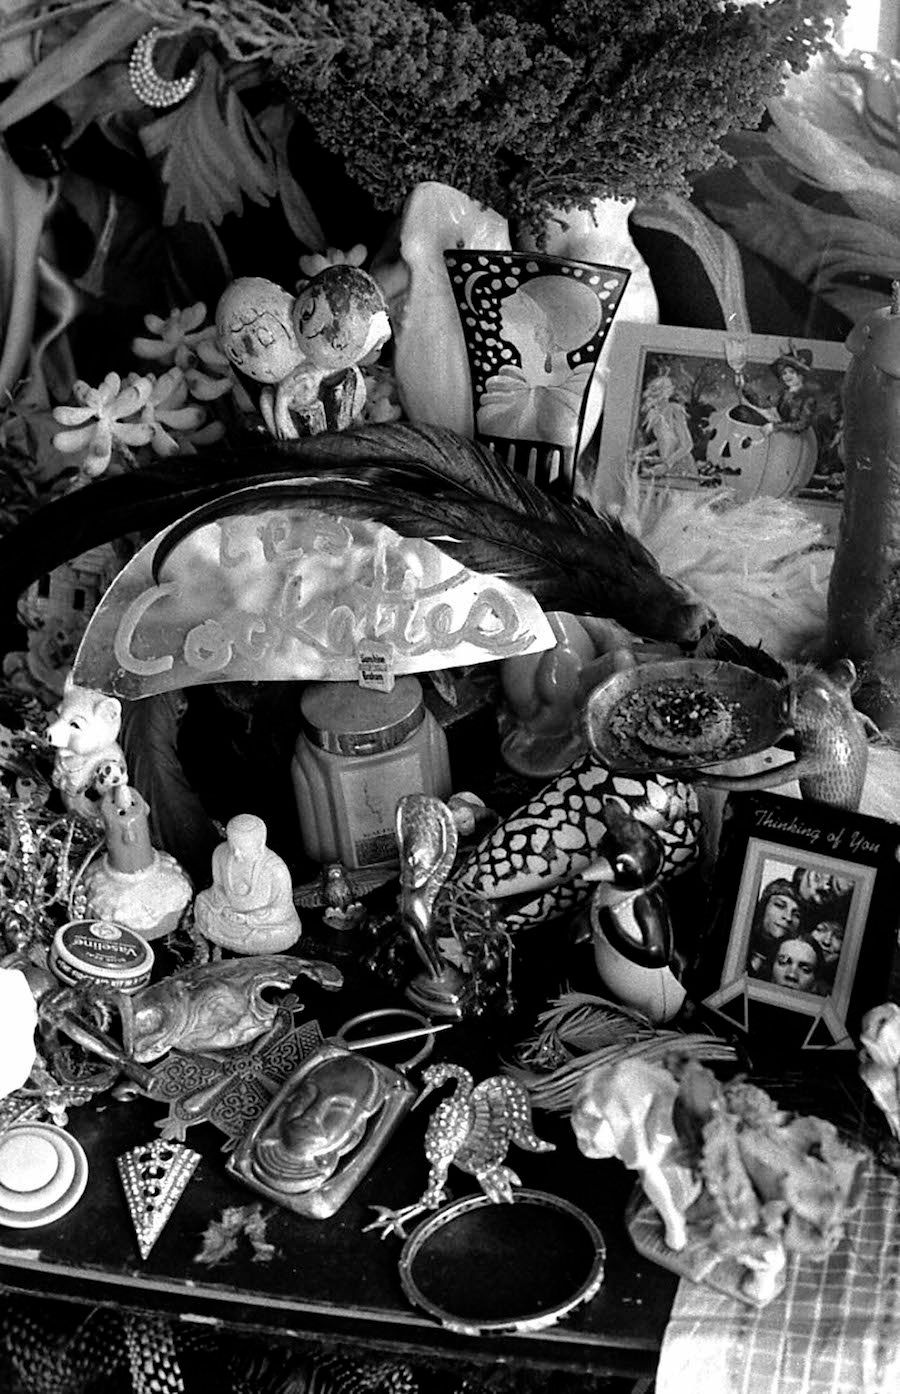 Cockette Assemblage, 1971. Photo by Fayette Hauser. Courtesy of Fayette Hauser and Museum of Arts and Design.